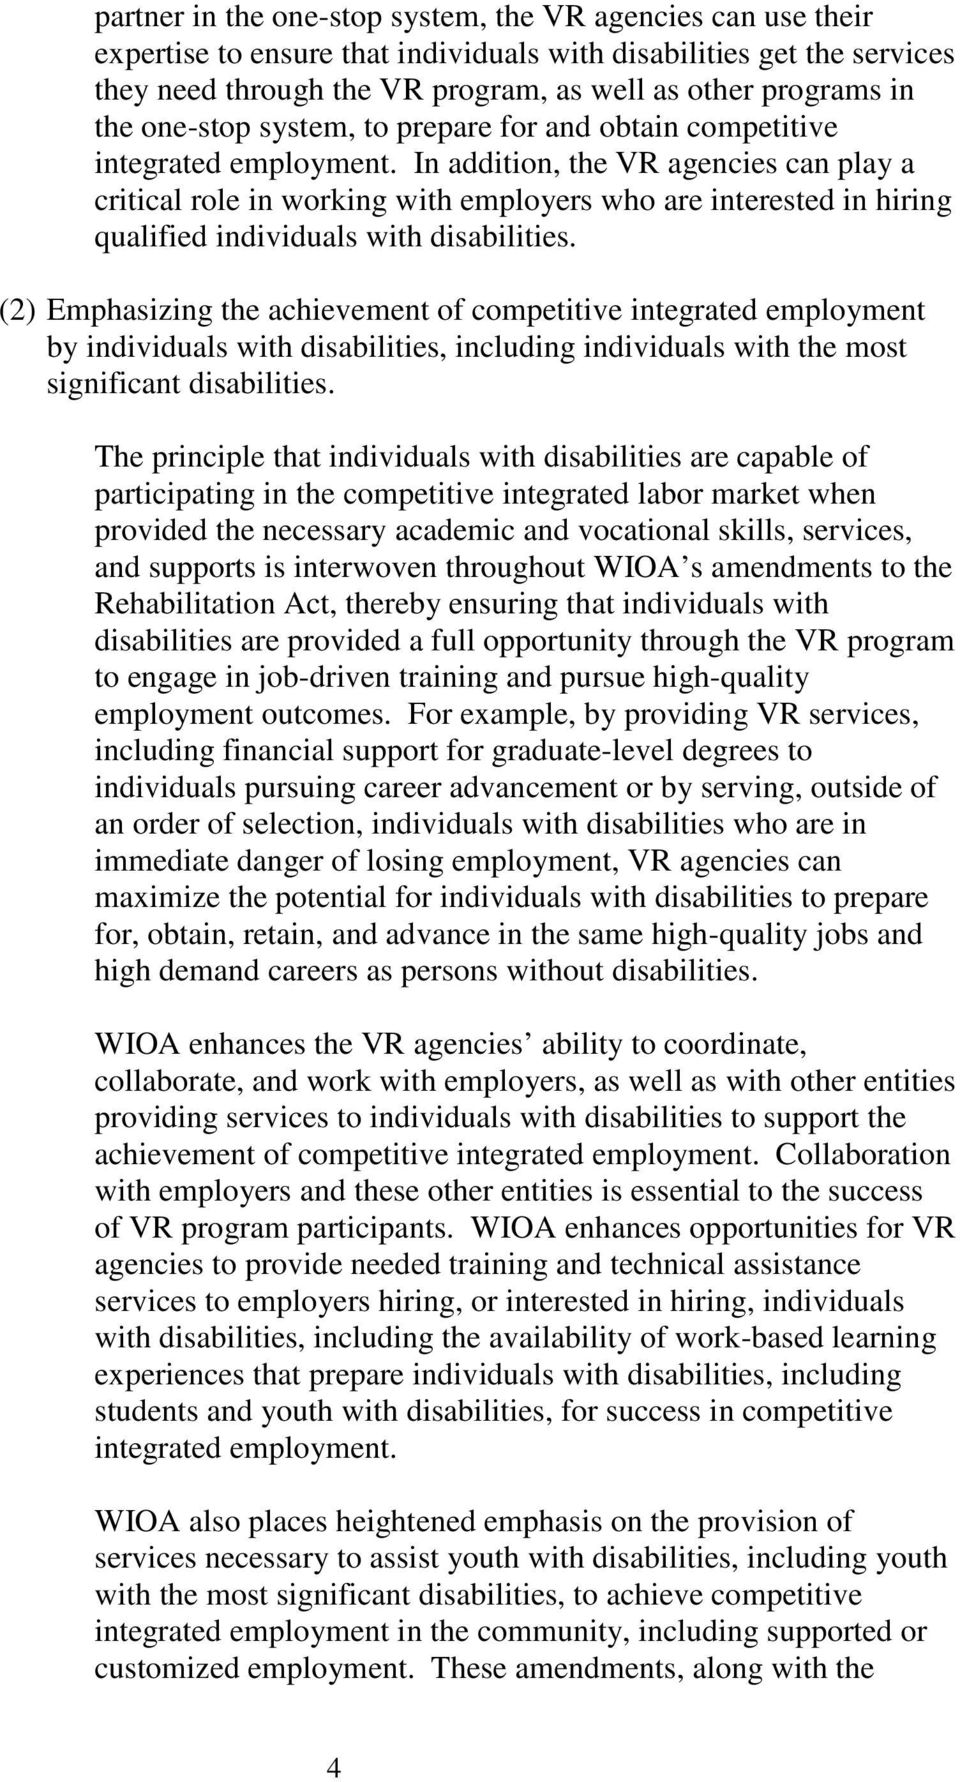 In addition, the VR agencies can play a critical role in working with employers who are interested in hiring qualified individuals with disabilities.